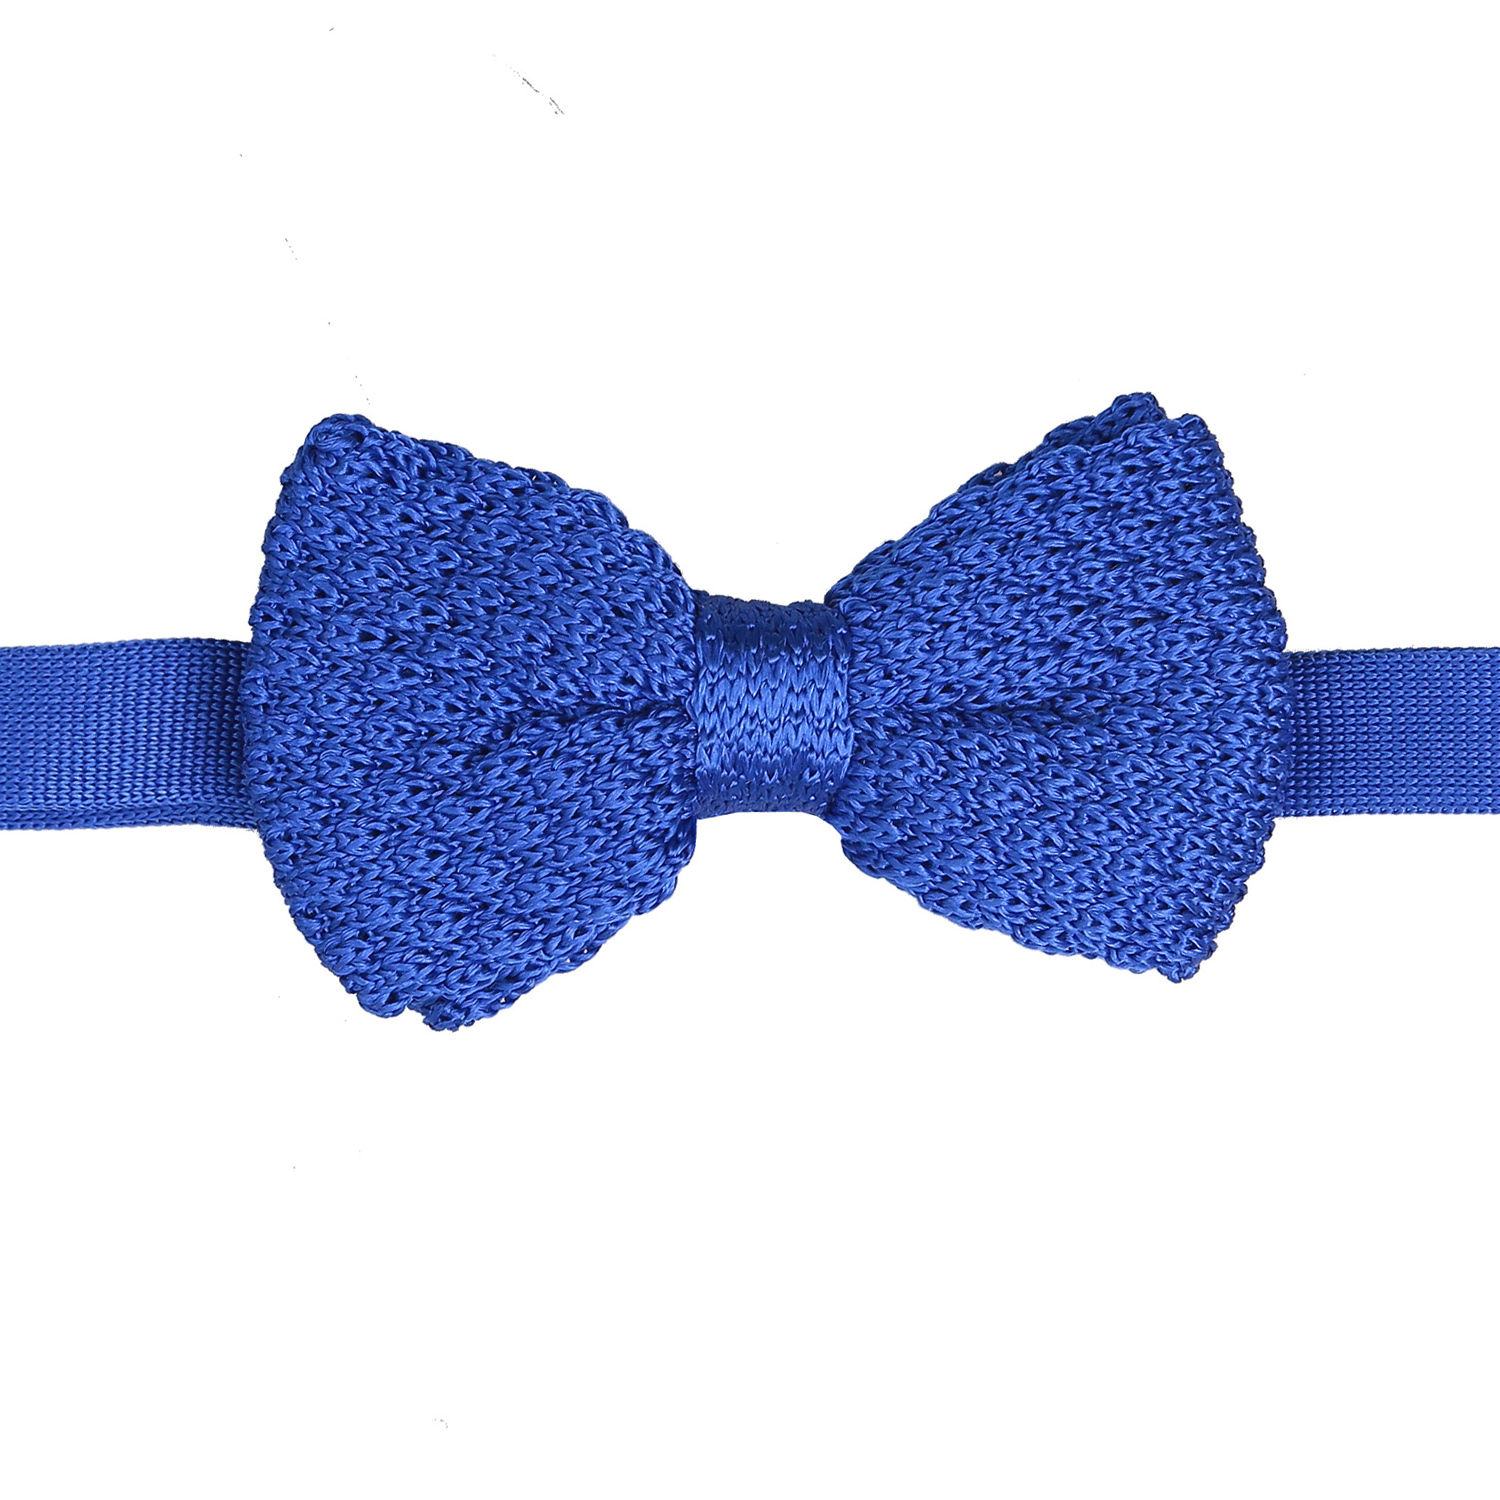 8cc844d59593 Royal Blue Grenadine Silk Knitted Pre-Tied Bow Tie